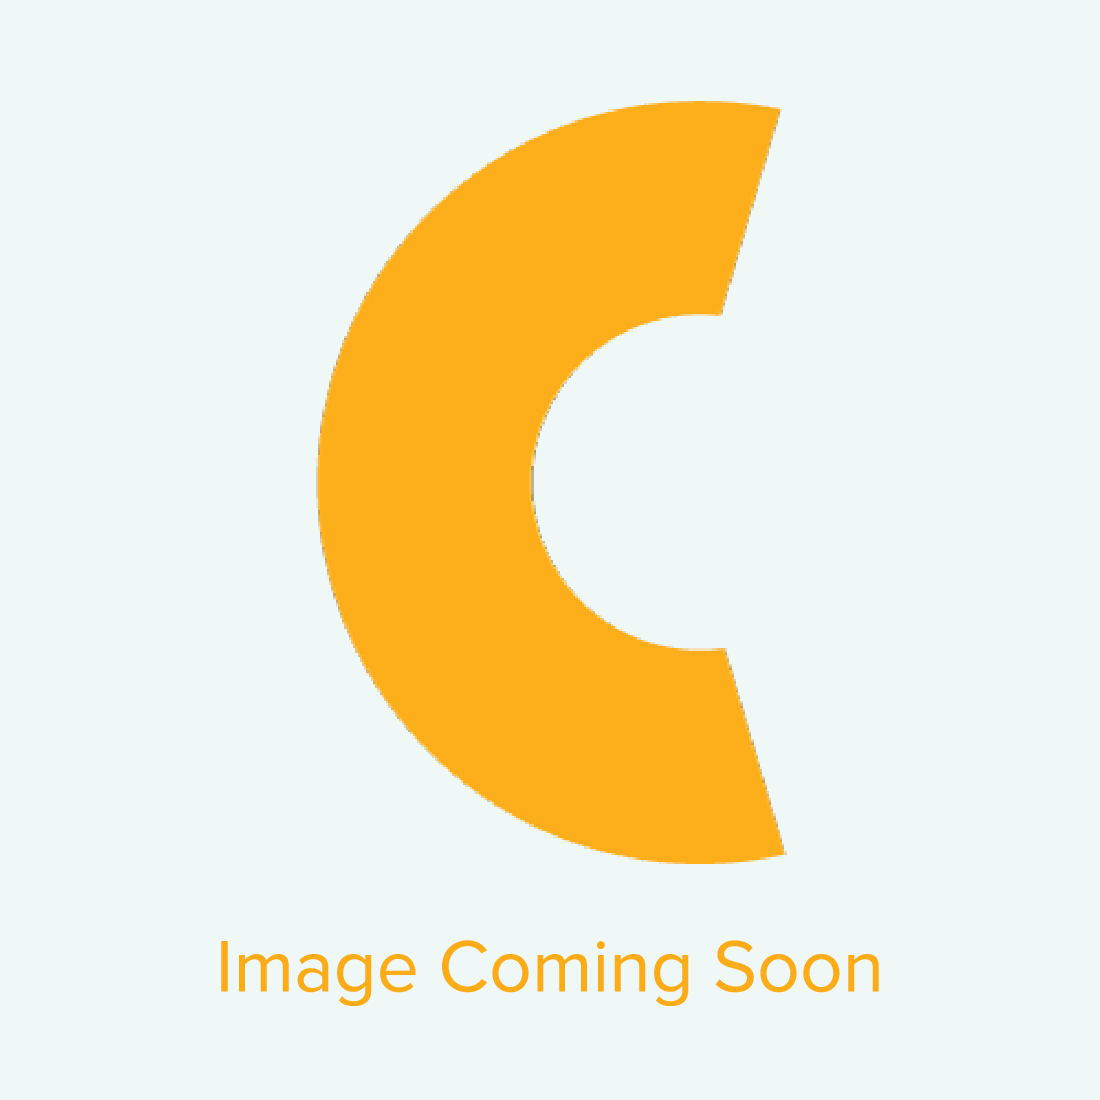 ColorPrint SubliThin Printable Heat Transfer Vinyl